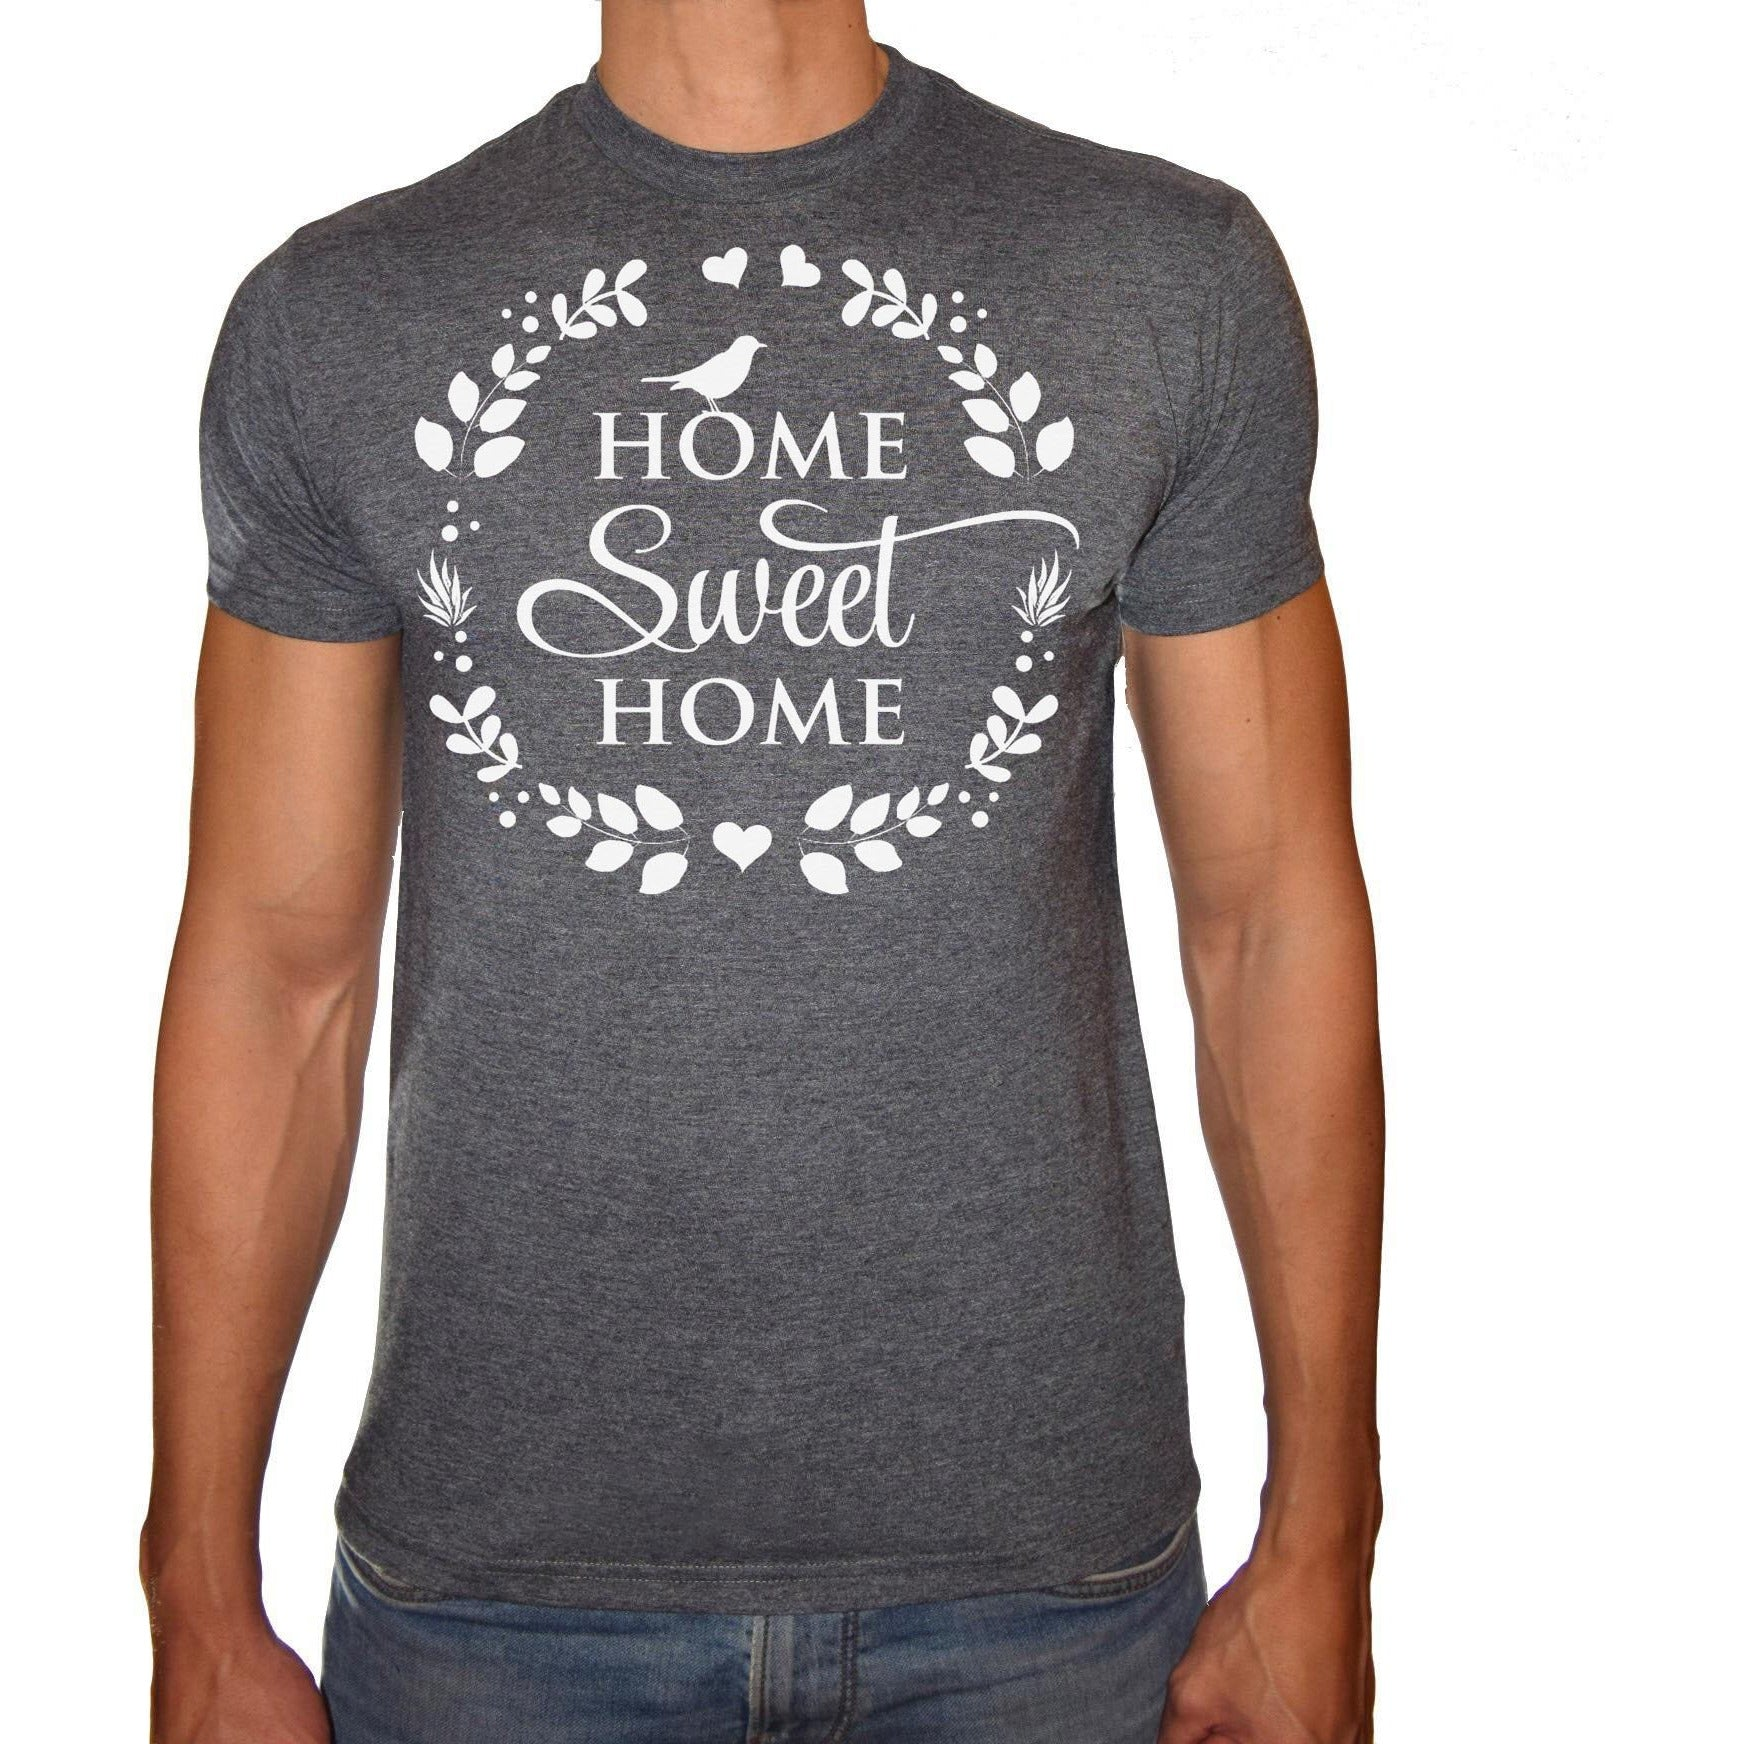 Phoenix CHARCOAL Round Neck Printed T-Shirt Men (Home)